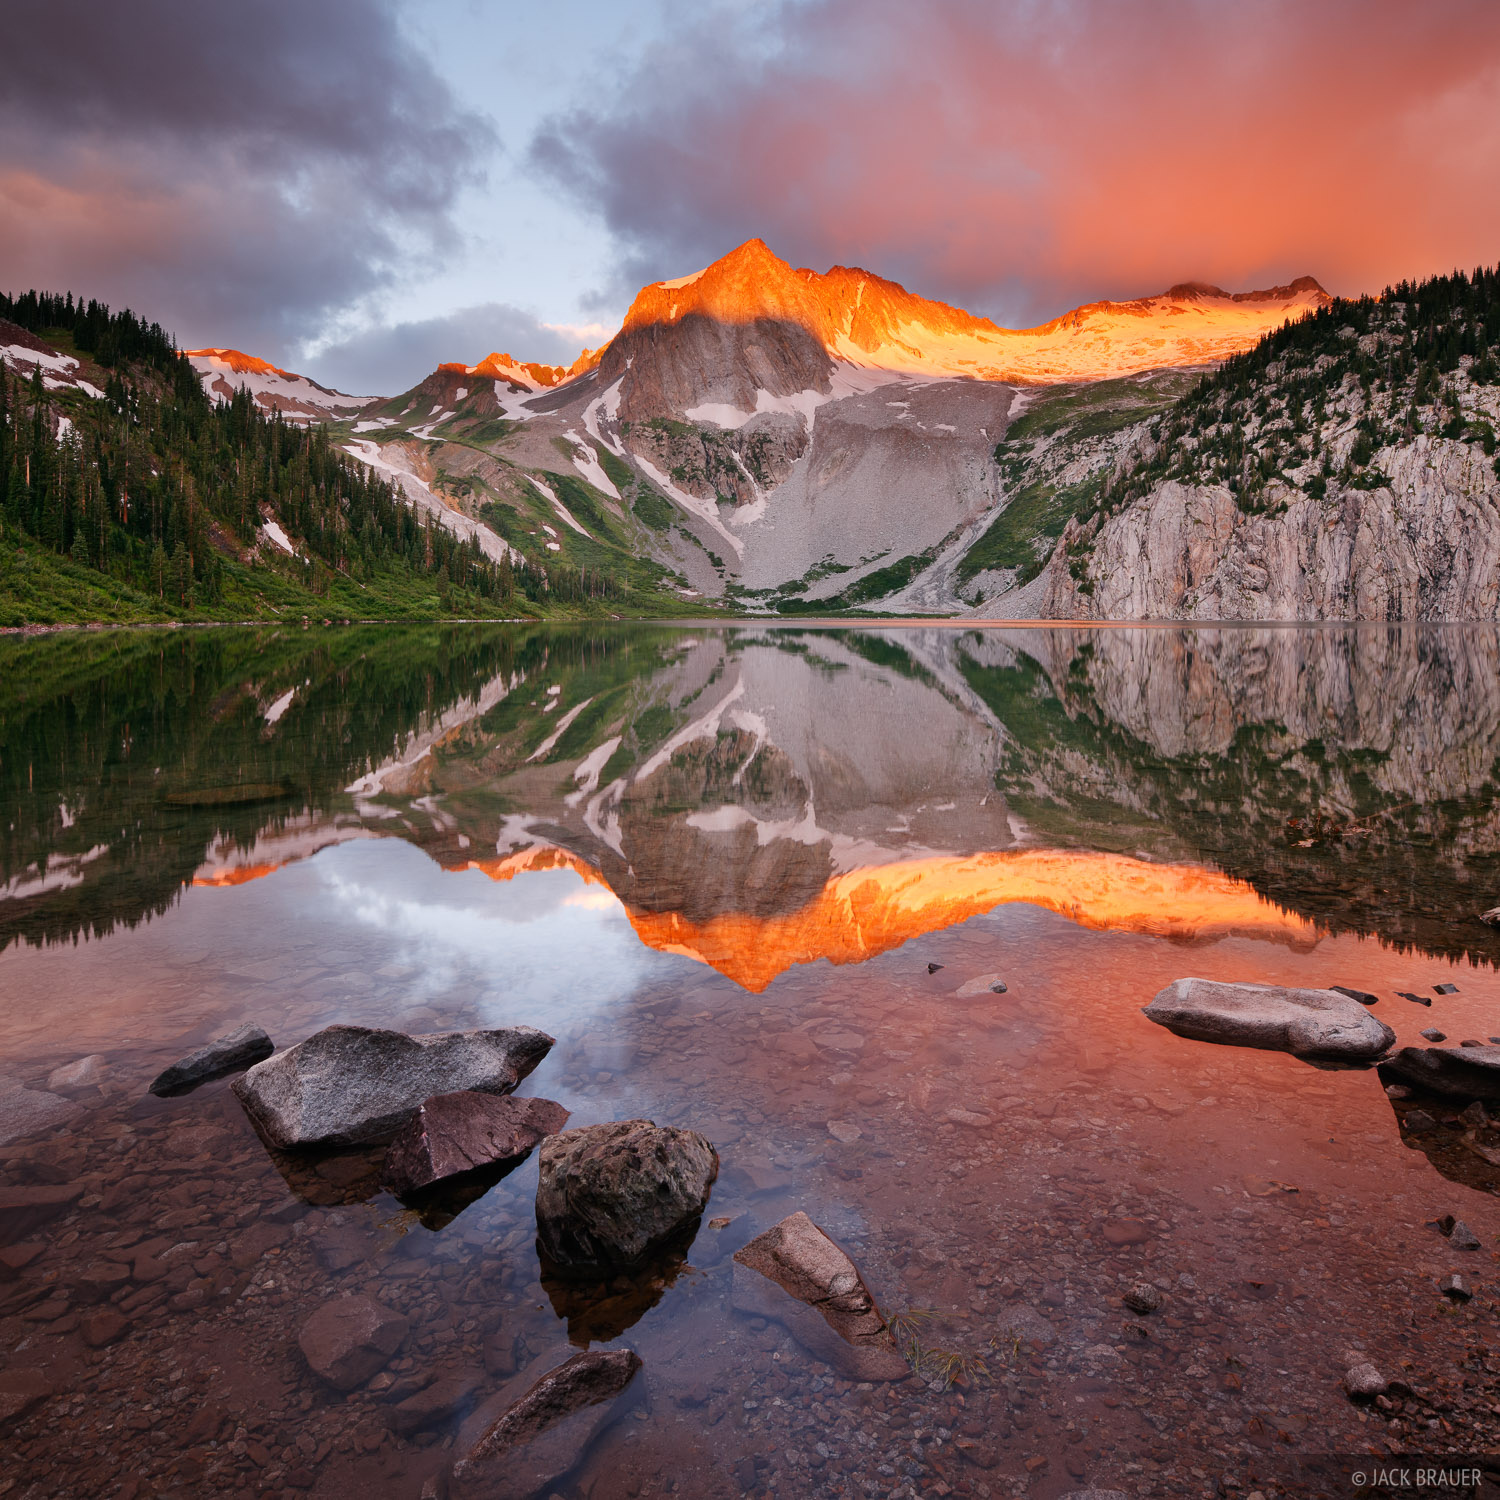 Snowmass Lake, Snowmass Mountain, sunrise, alpenglow, reflection, Elk Mountains, Colorado, Maroon Bells-Snowmass Wilderness, photo